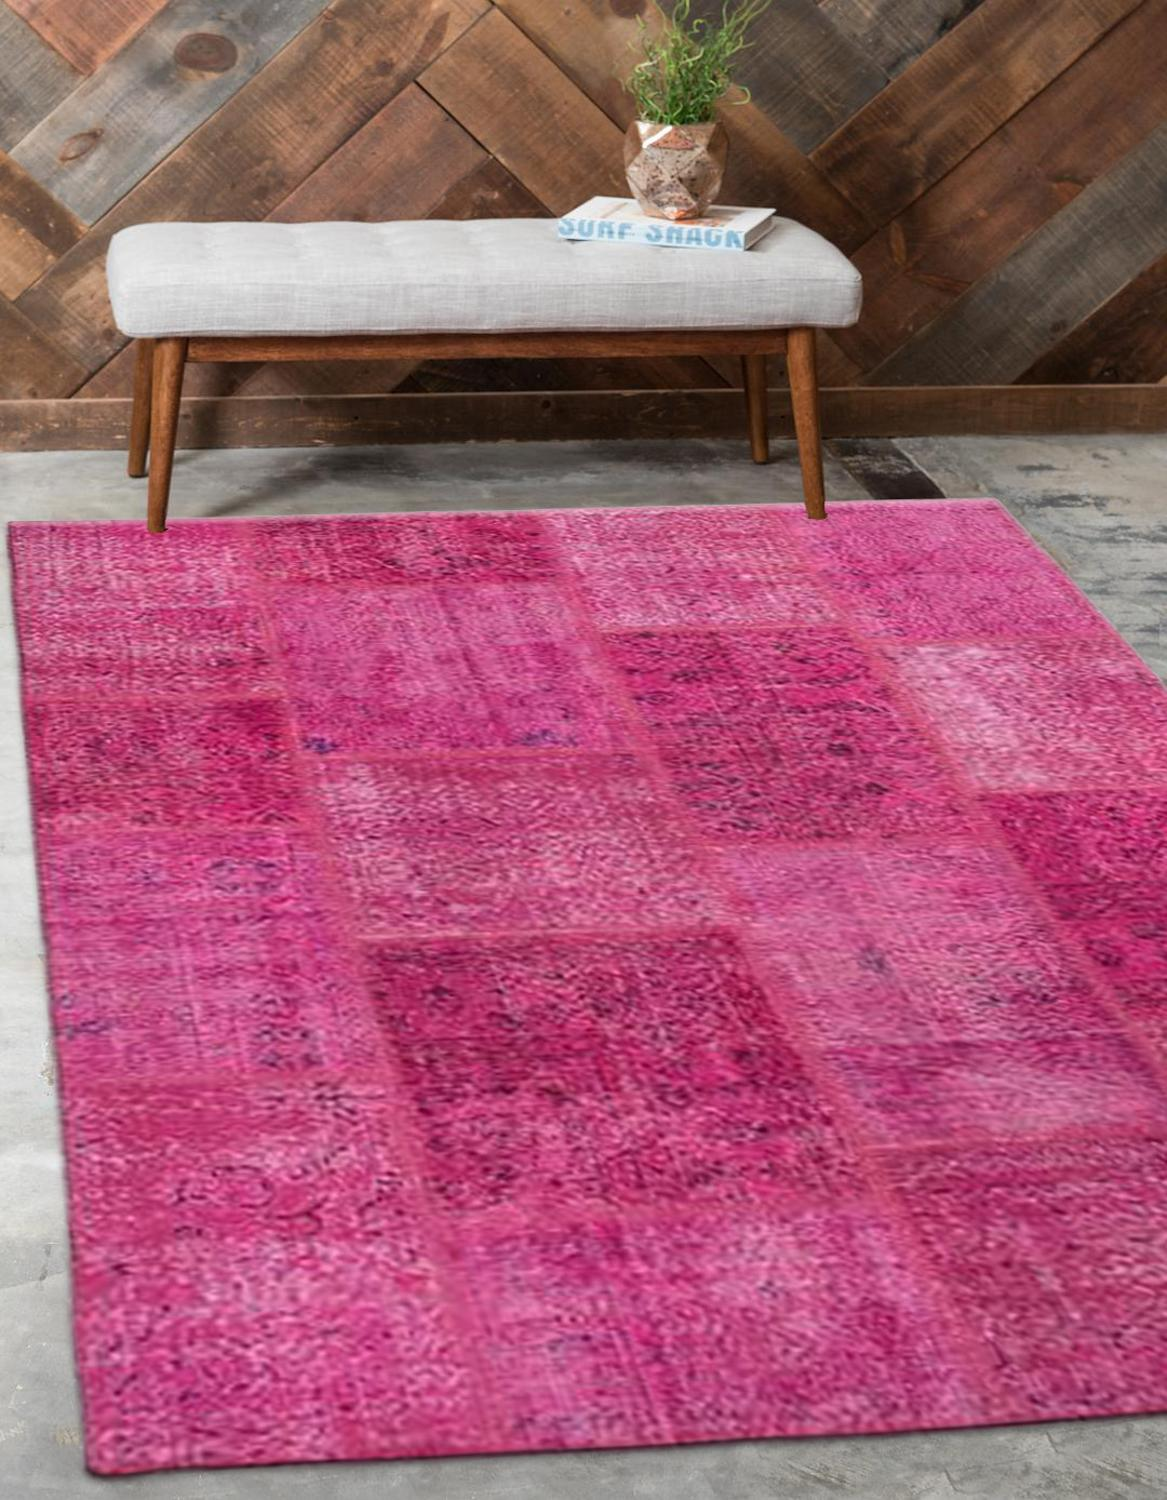 Else Pink Anatolian Patchwork Rug Turkish Handmade Organic Area Rug Decorative Home Decor Wool Patchwork Rug Carpet